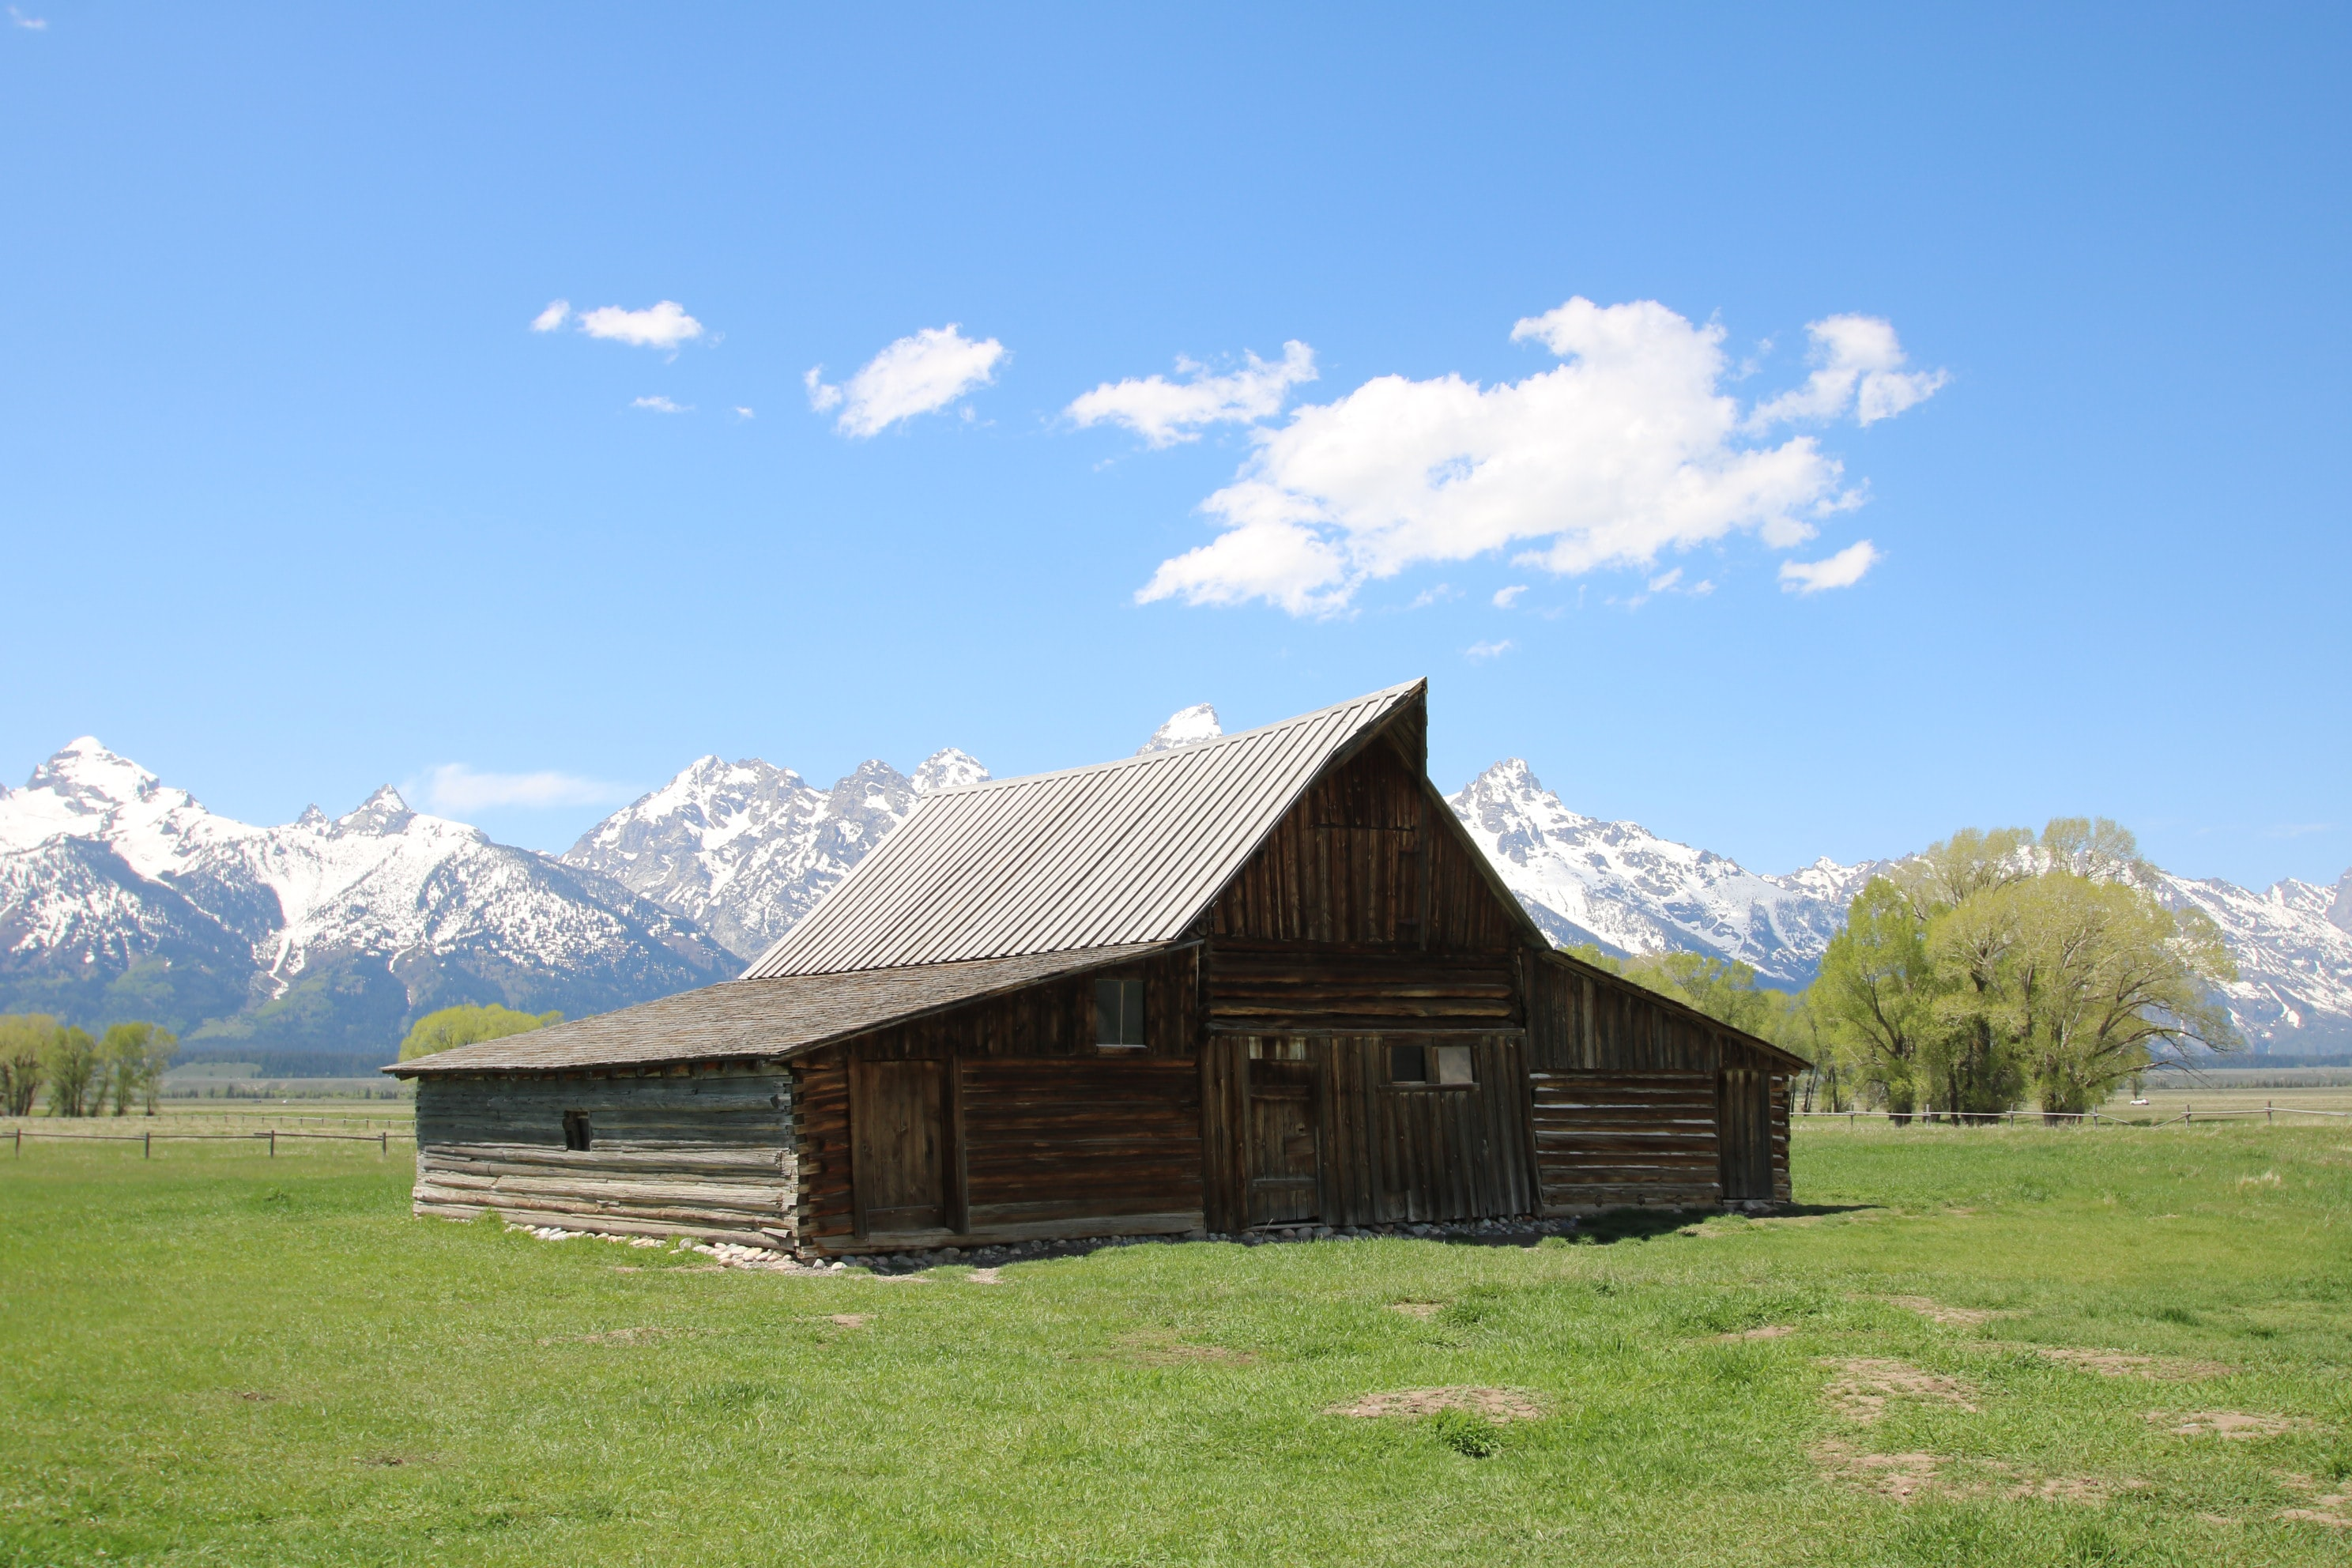 brown wooden barn near snow-covered mountain during day time